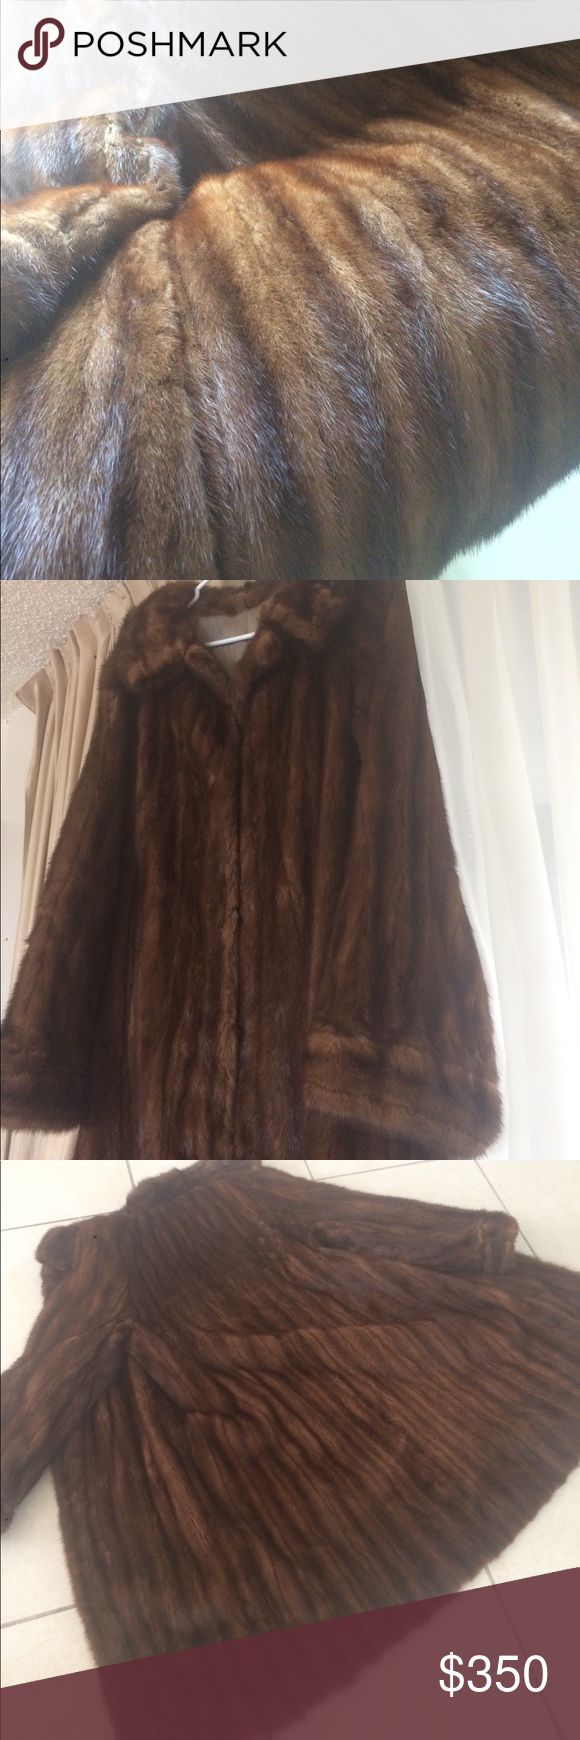 "Vintage mink coat Fits like a size 12. No tags lined with monogram. 2 tie front slight alterations in lining. Can't see when worn. 40"" long swing coat. Absolutely fabulous. Must let go . I live in Florida Jackets & Coats"